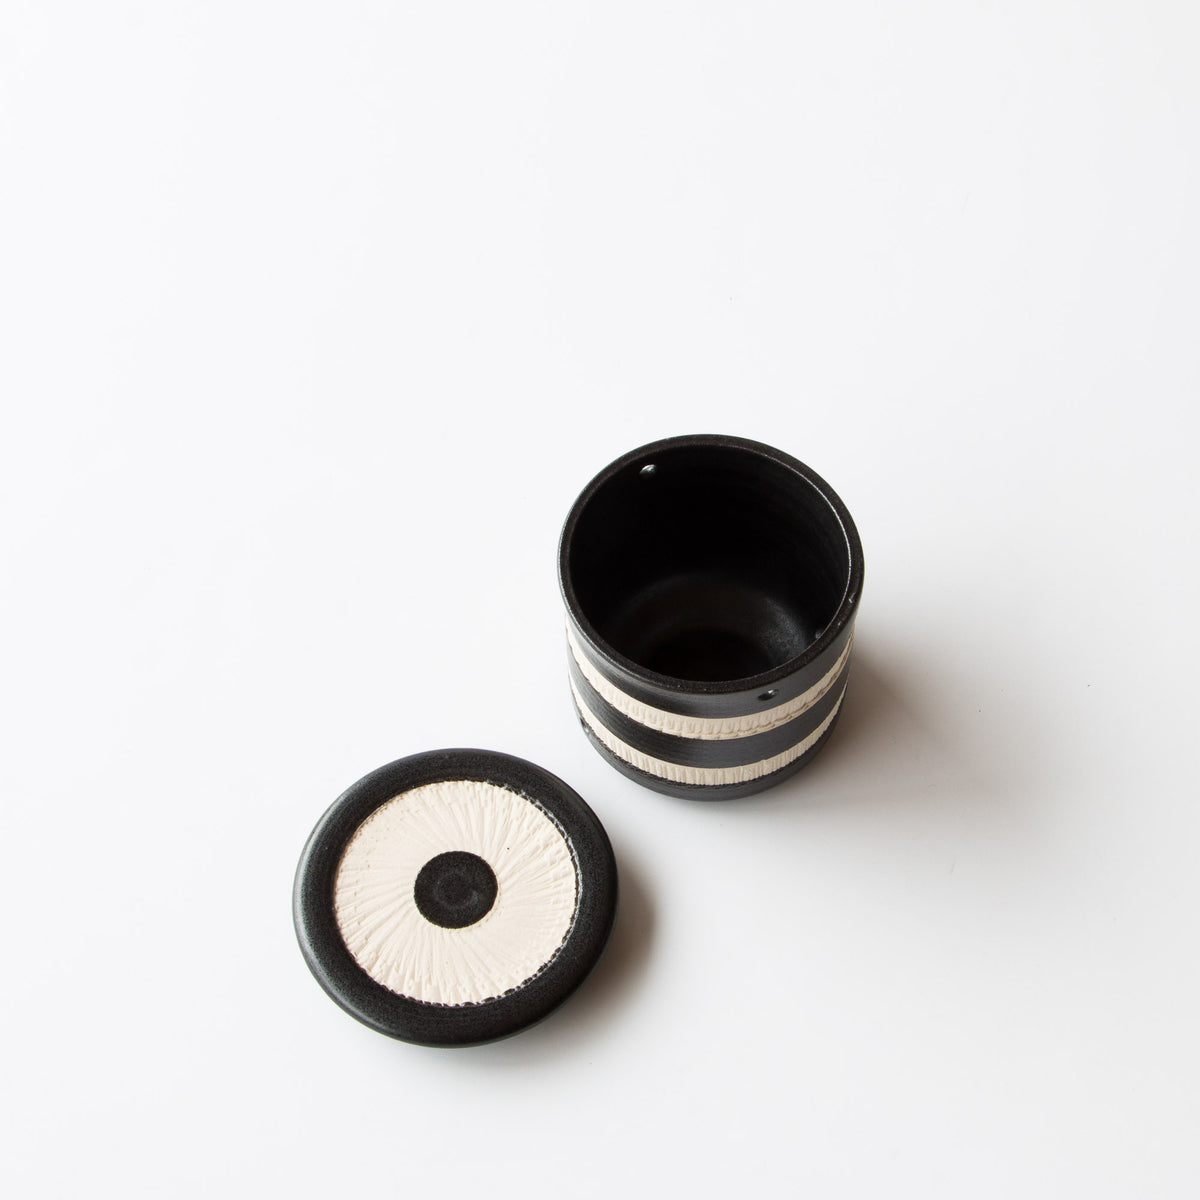 Top View - Black & White Handmade Porcelain Ceramic Garlic Keeper - Sold by Chic & Basta